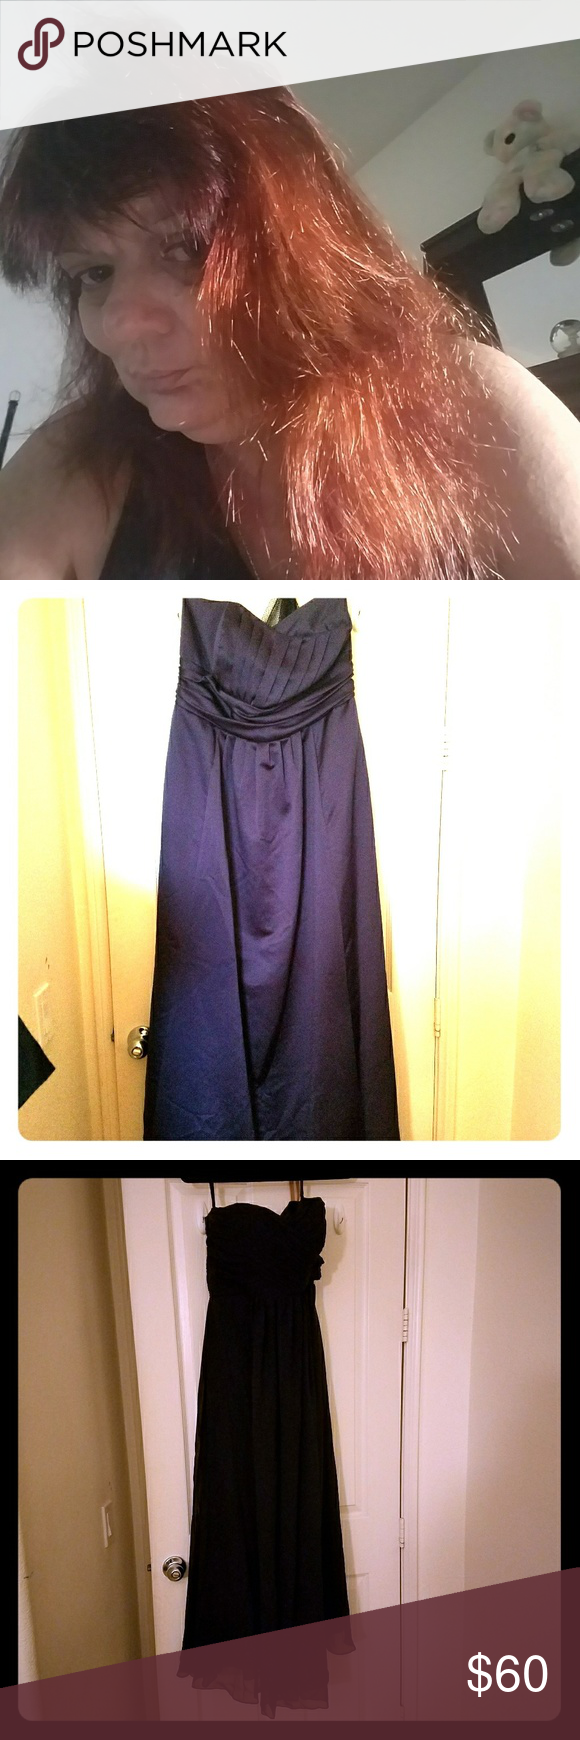 Dress Strapless Purple Dress ($75) Strapless Black evening dress (has tag) ($75) Evening dress with sequence ($50 / obo) Dresses